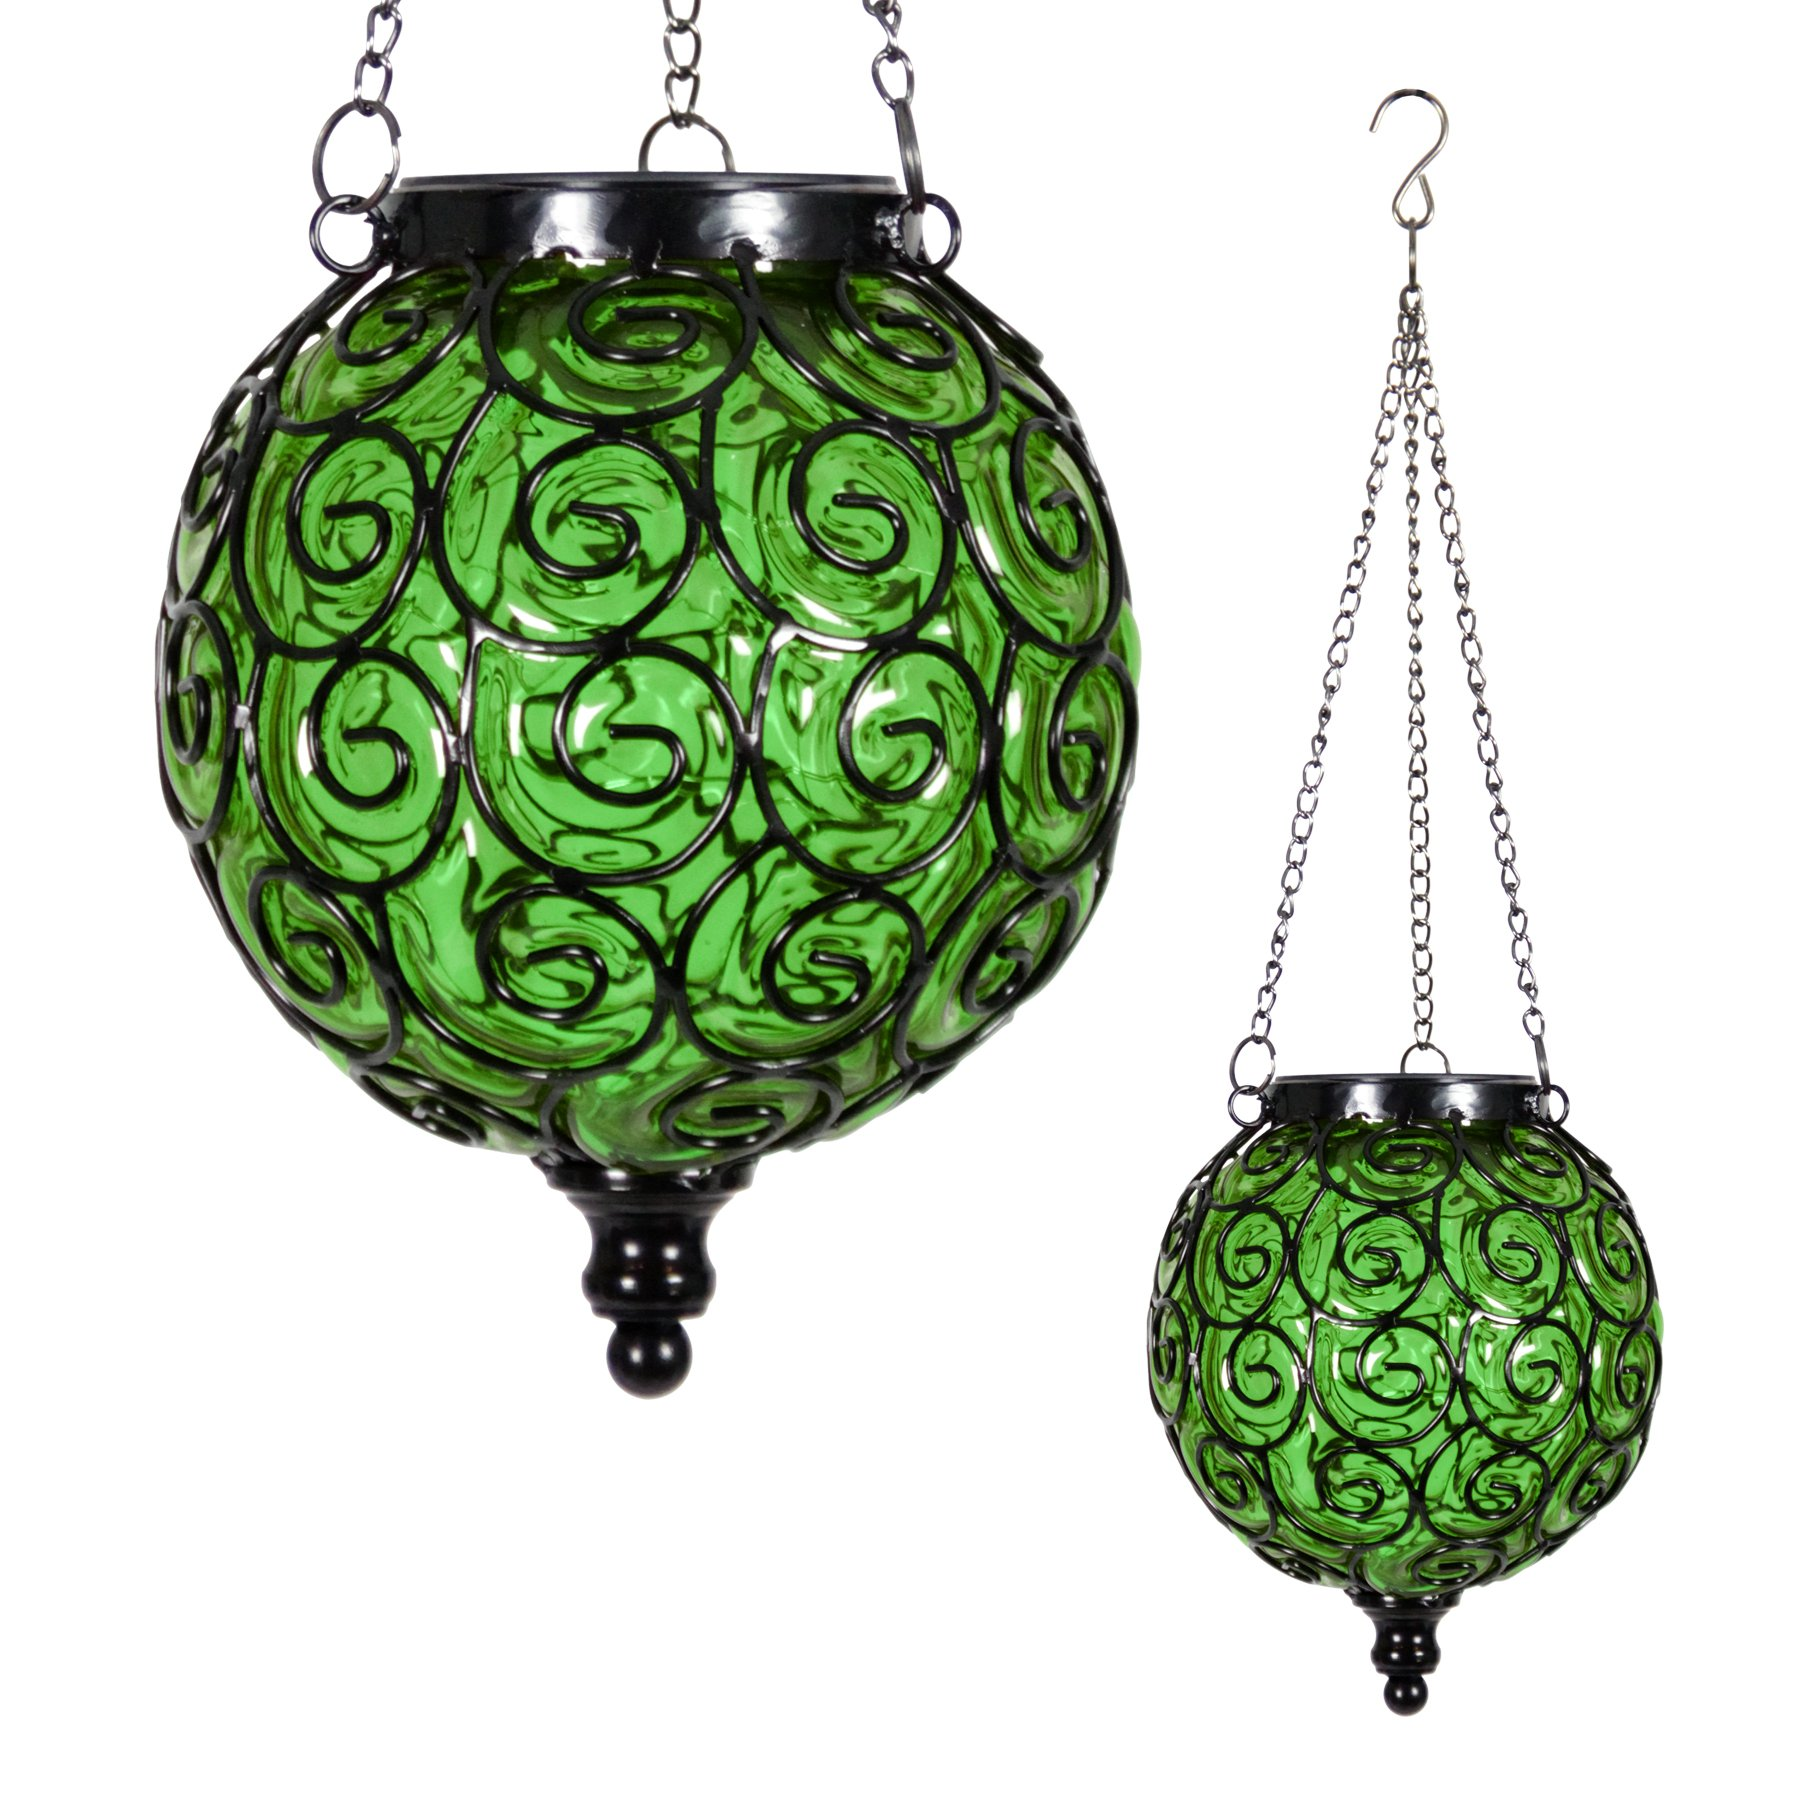 Exhart Round Solar Green Glass Hanging Lantern with 12 LED Firefly String Light, Glass Lantern, Hanging Decoration, Backyard/Outdoor / Garden by Exhart